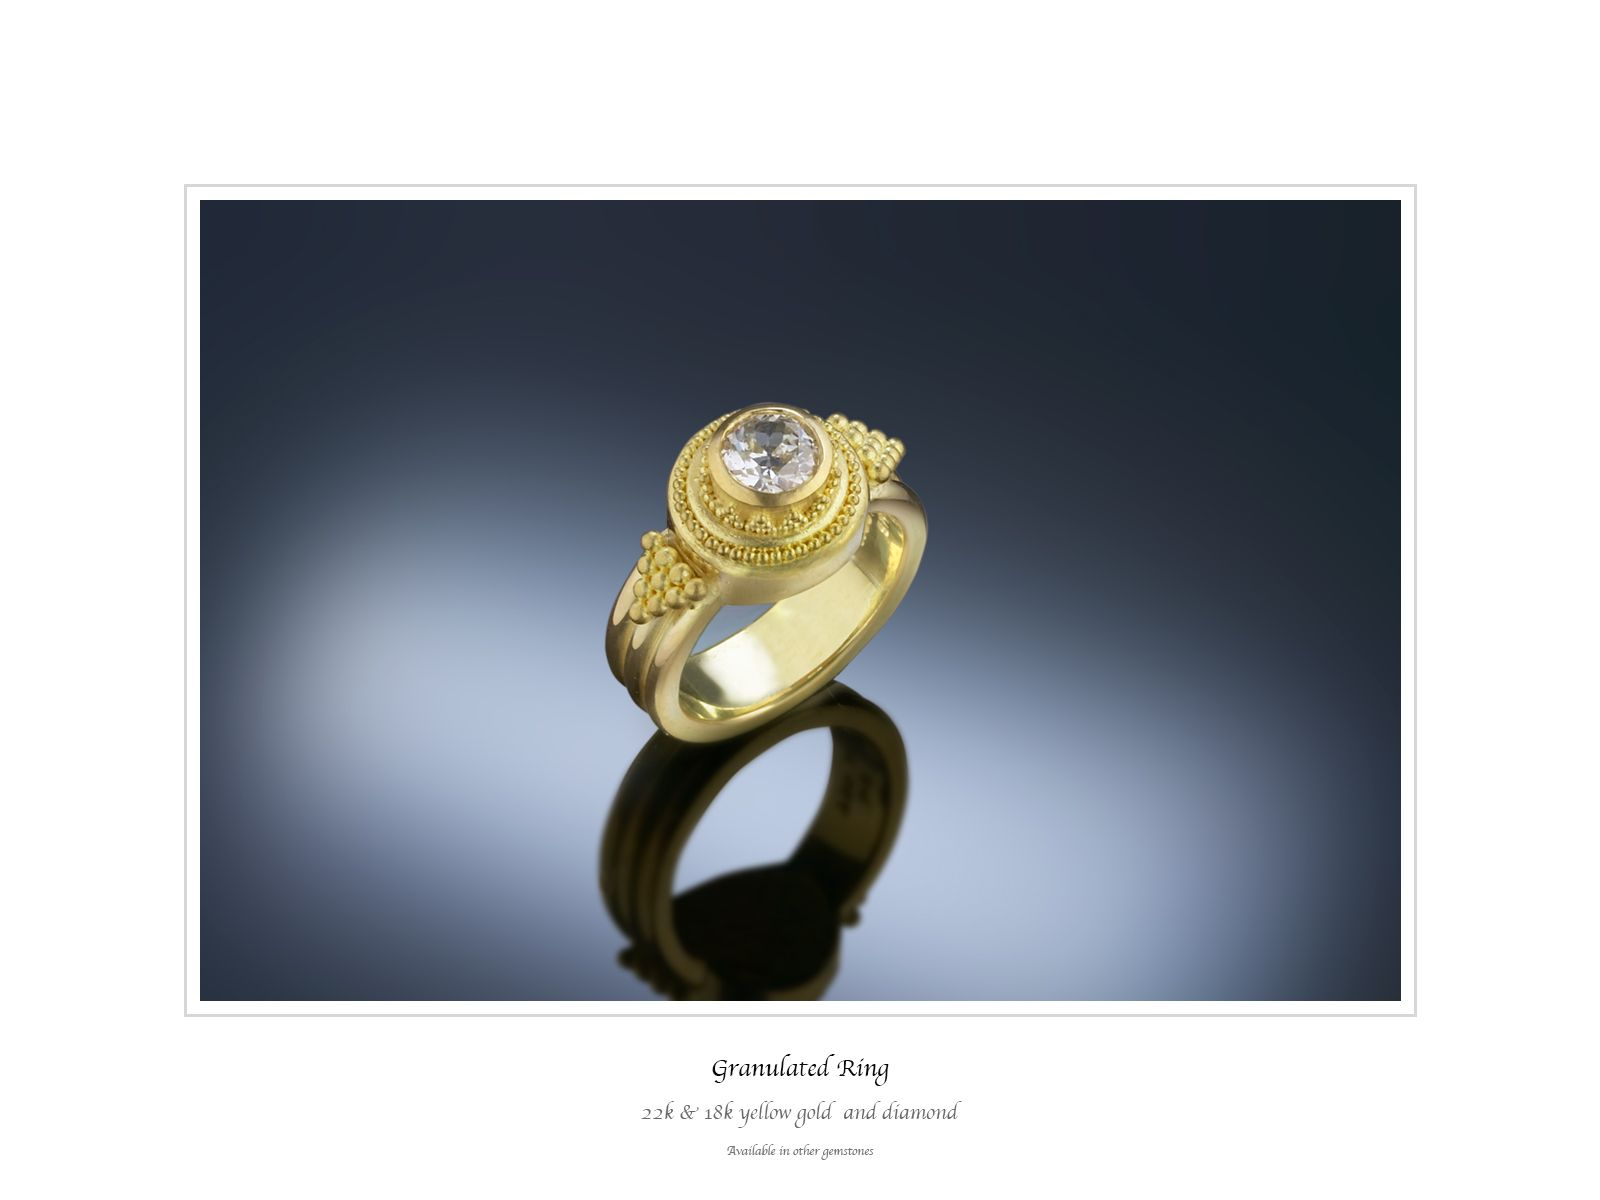 Granulated-Ring.jpg